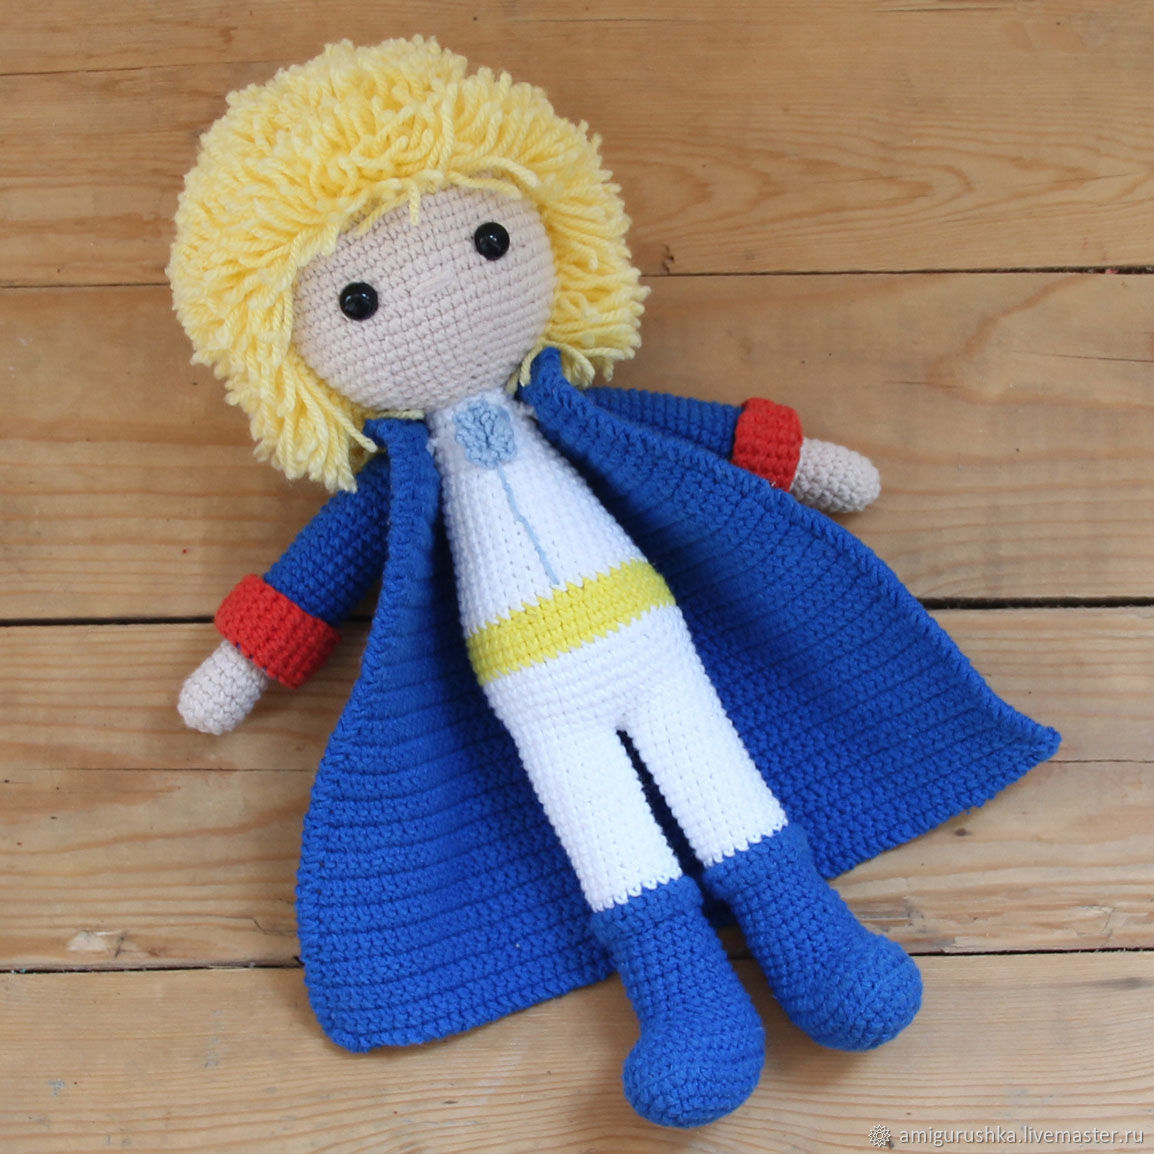 Knitted Dolls Crochet The Little Prince Toy Amigurumi Shop